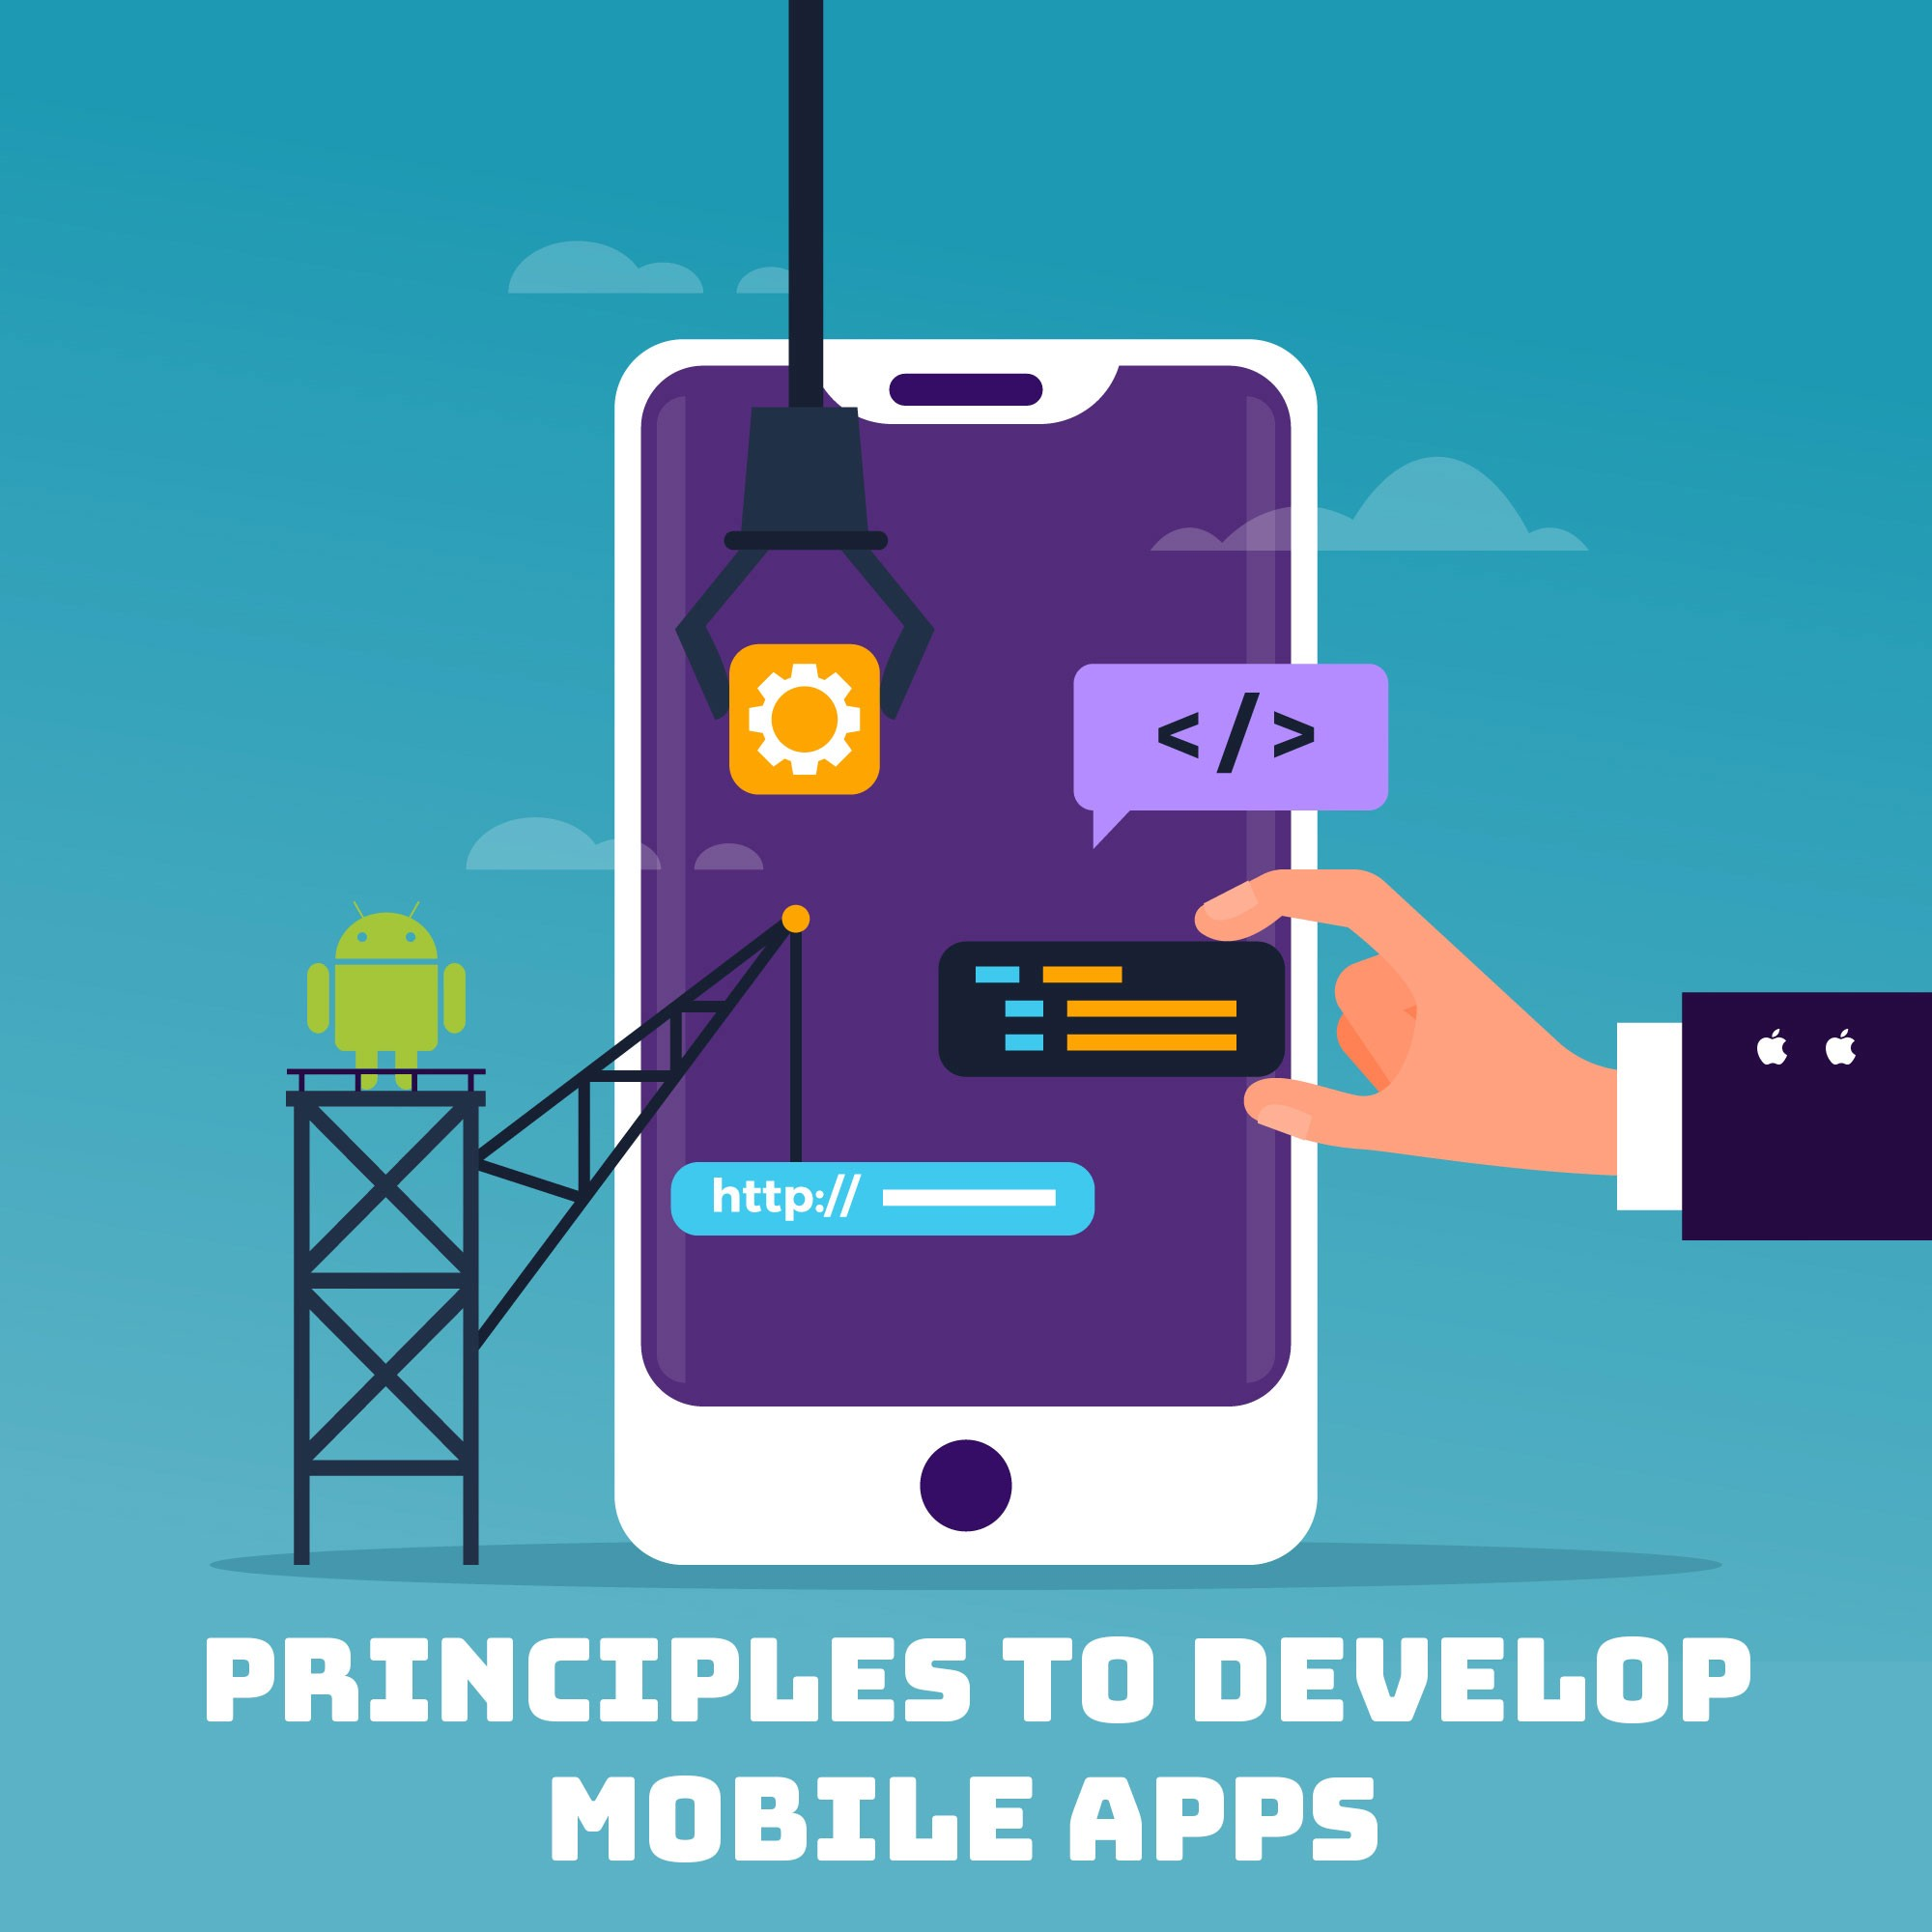 Standards to Develop Mobile Apps